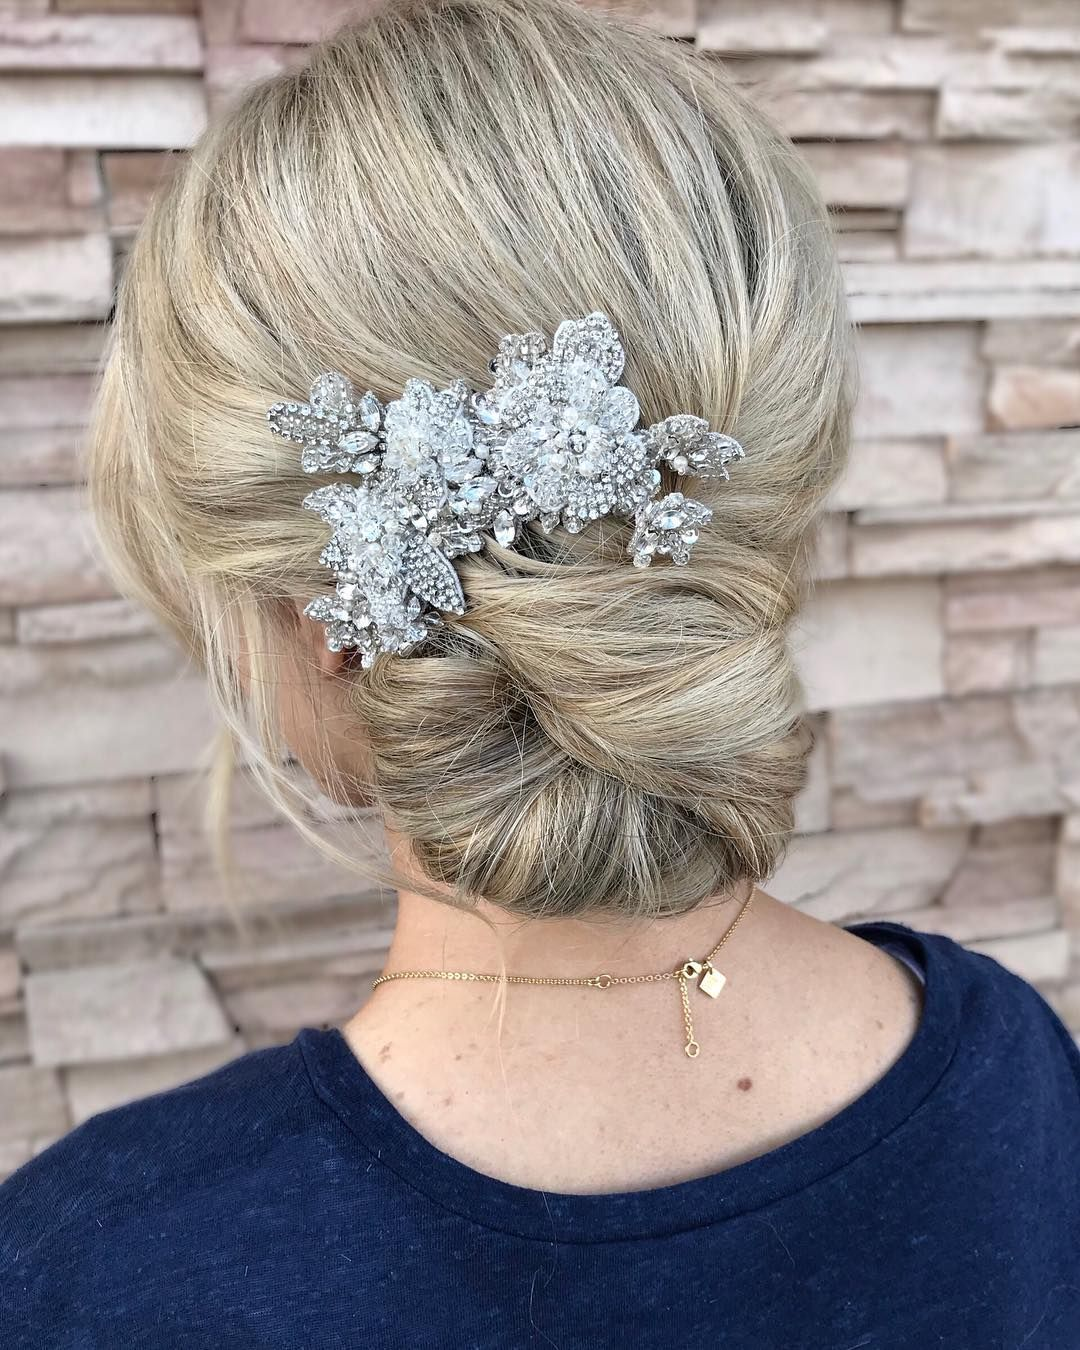 Drop-Dead Gorgeous Wedding Hairstyles  - updo wedding hair,bridal updo hairstyles ,wedding hairstyle , bridal hairstyle #updo #messyupdo #weddinghair #hairstyles